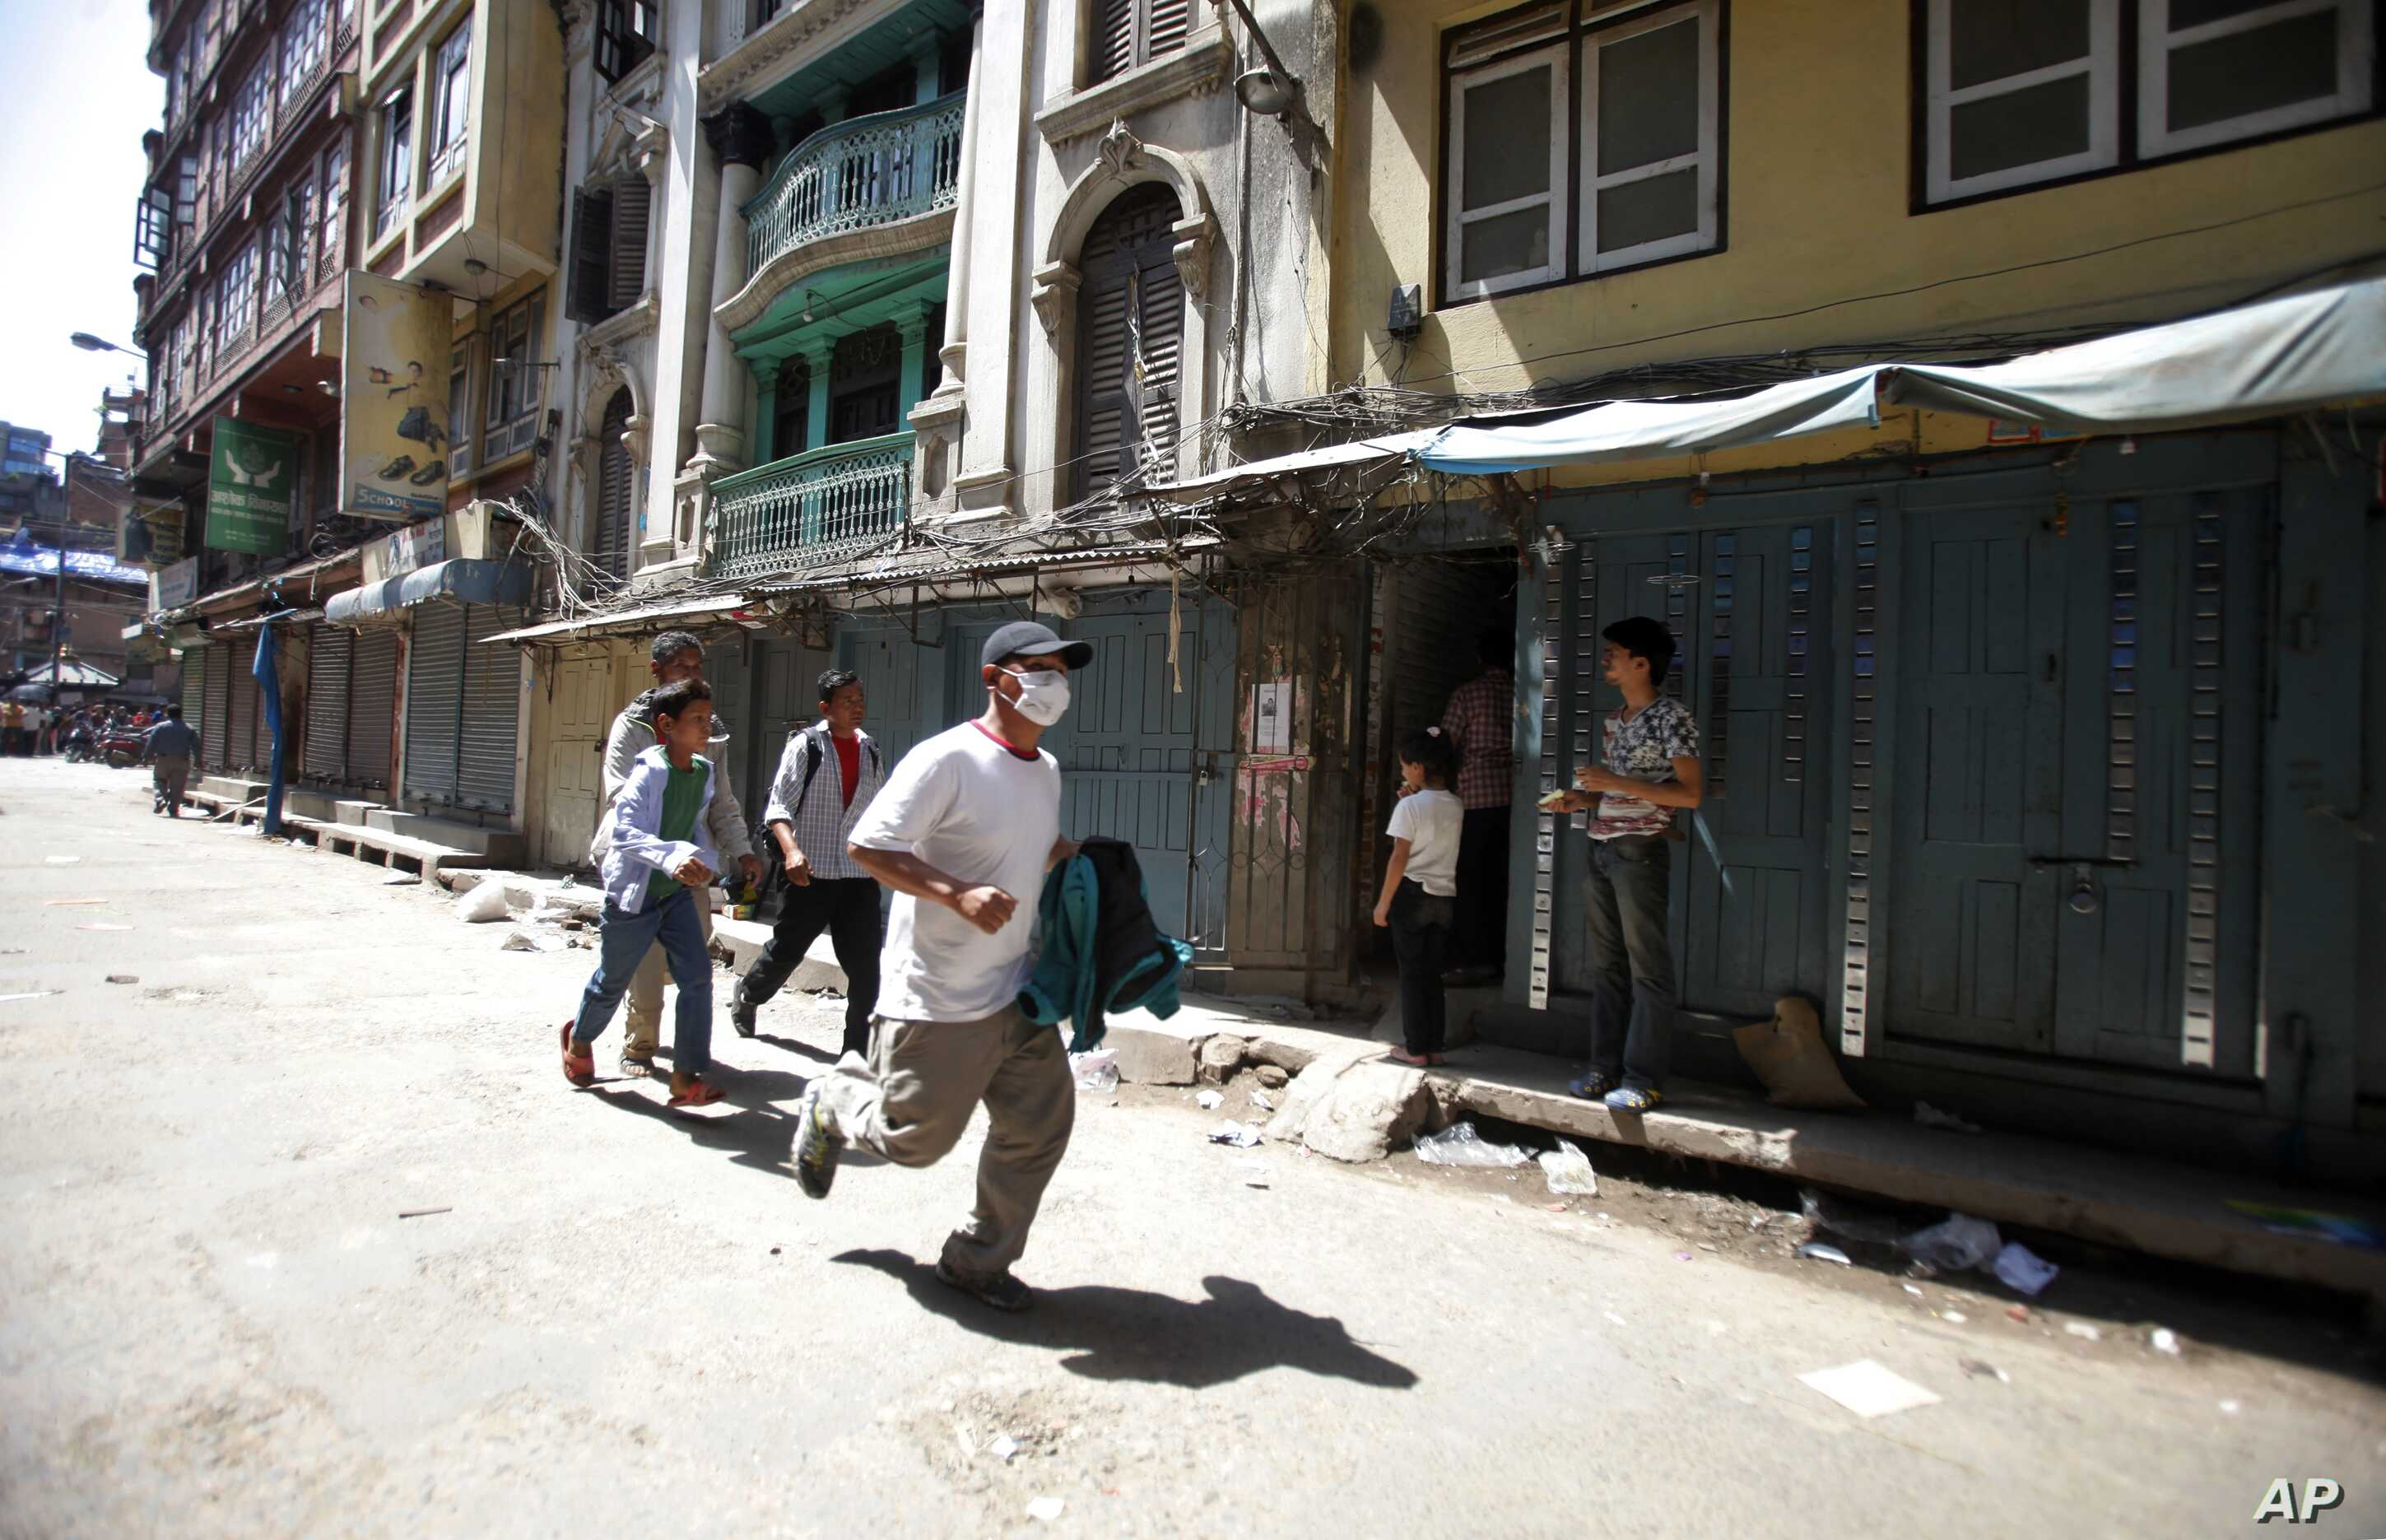 A Nepalese man runs to safety after a second earthquake hit Nepal in Kathmandu, Nepal, Tuesday, May 12, 2015. A major earthquake hit a remote mountainous region of Nepal on Tuesday, triggering landslides and toppling buildings less than three weeks a